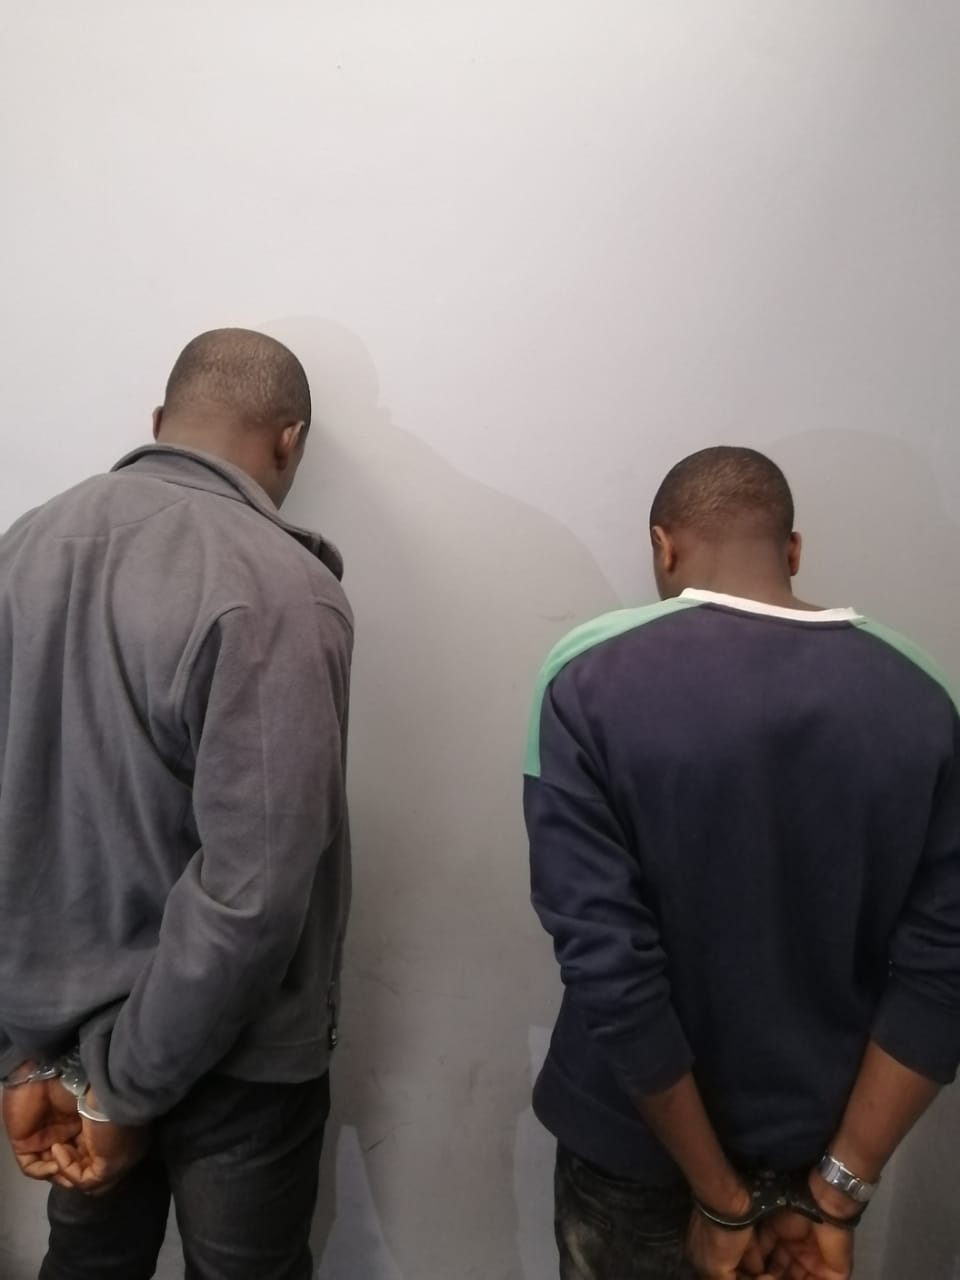 Four Nigerian Officials Busted on Million Worth of Drugs Scandal In Hilbrow